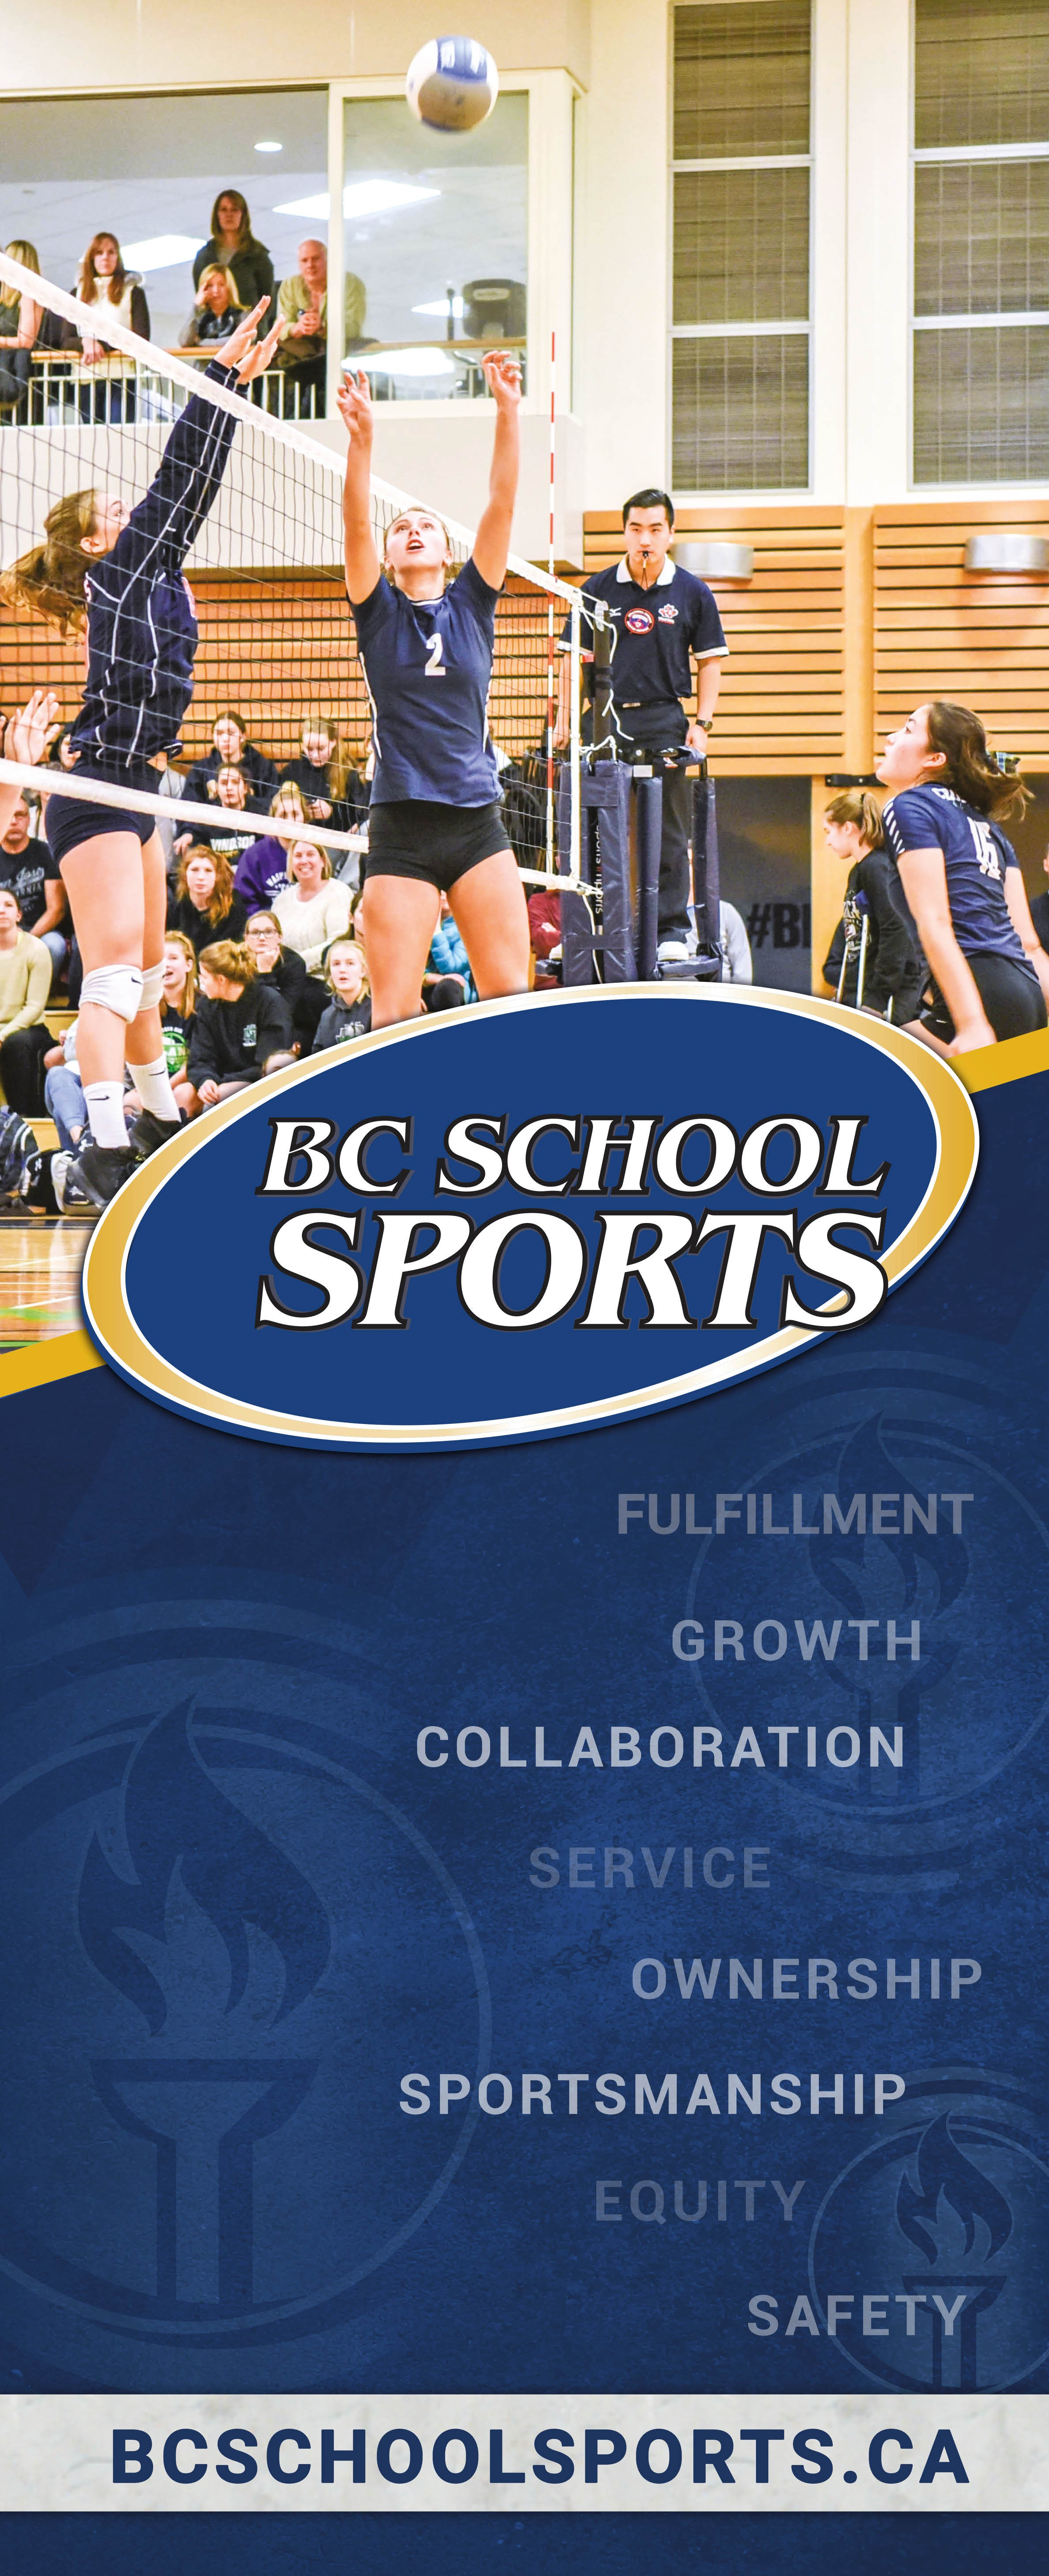 Design upbeat & exciting Pop Up  banners for BC School Sports!